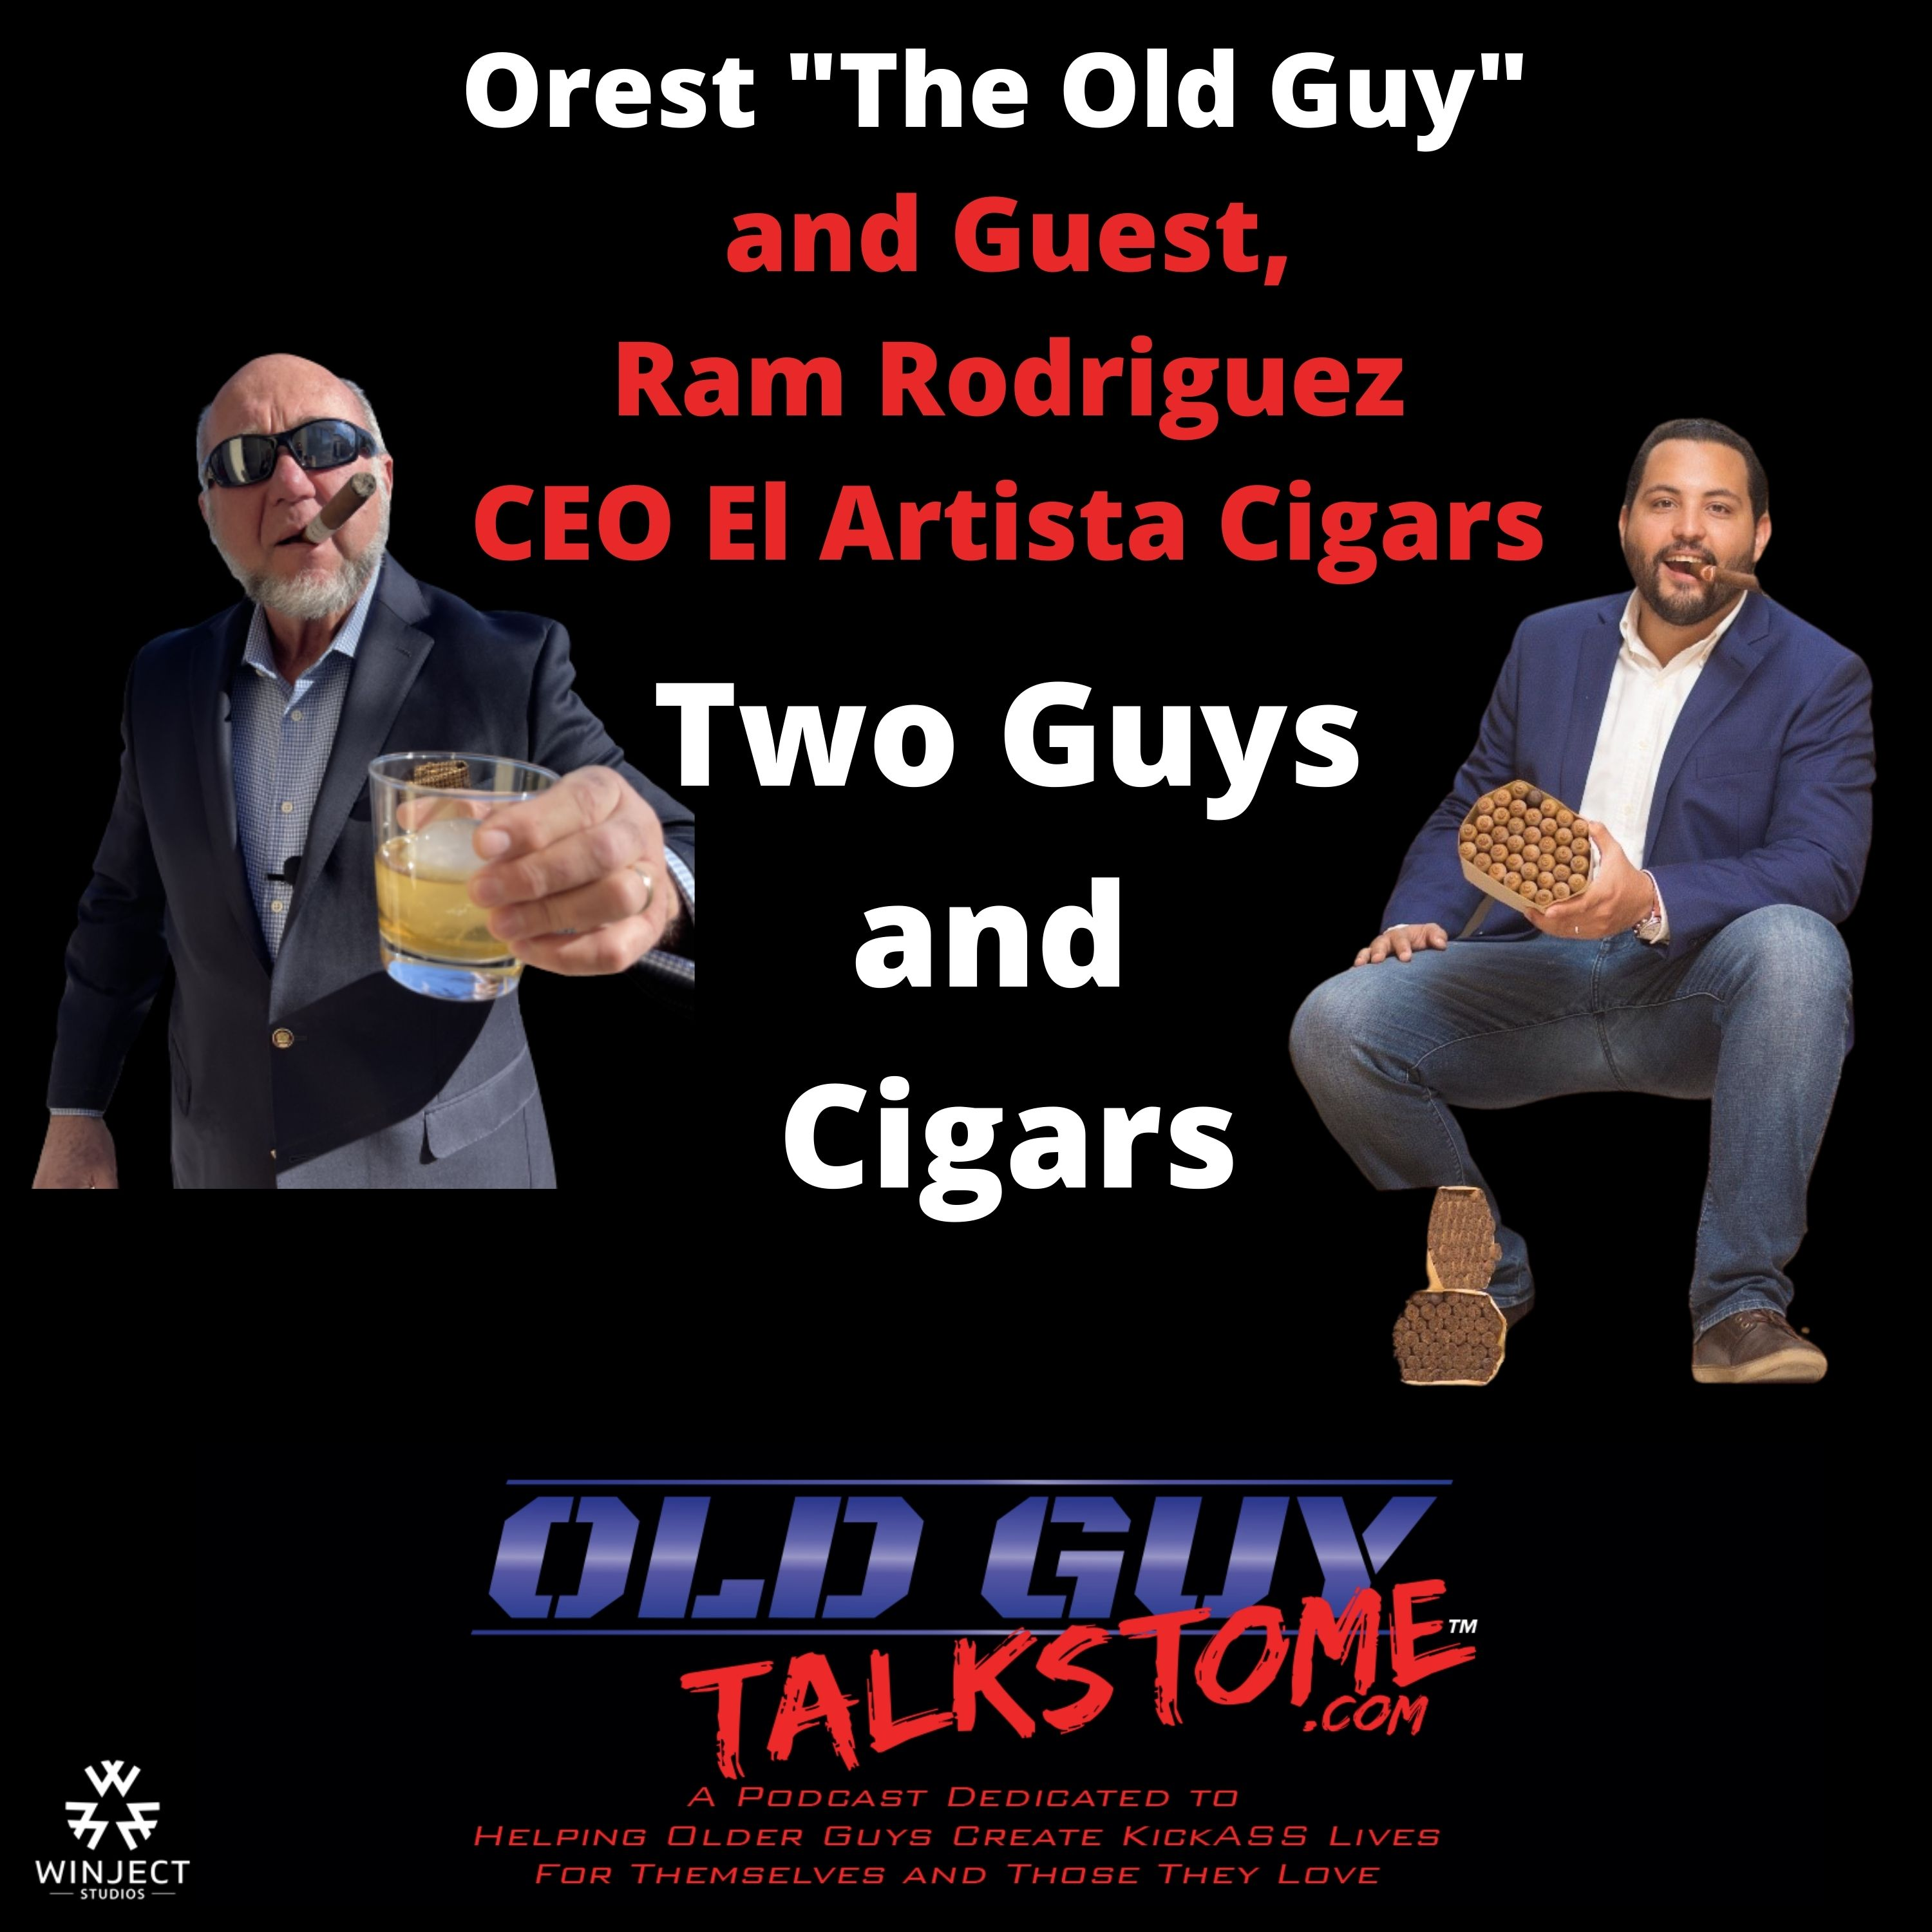 OldGuyTalksToMe - 79.  Two Guys and Cigars with Guest Ram Rodriguez CEO El Artista Cigars